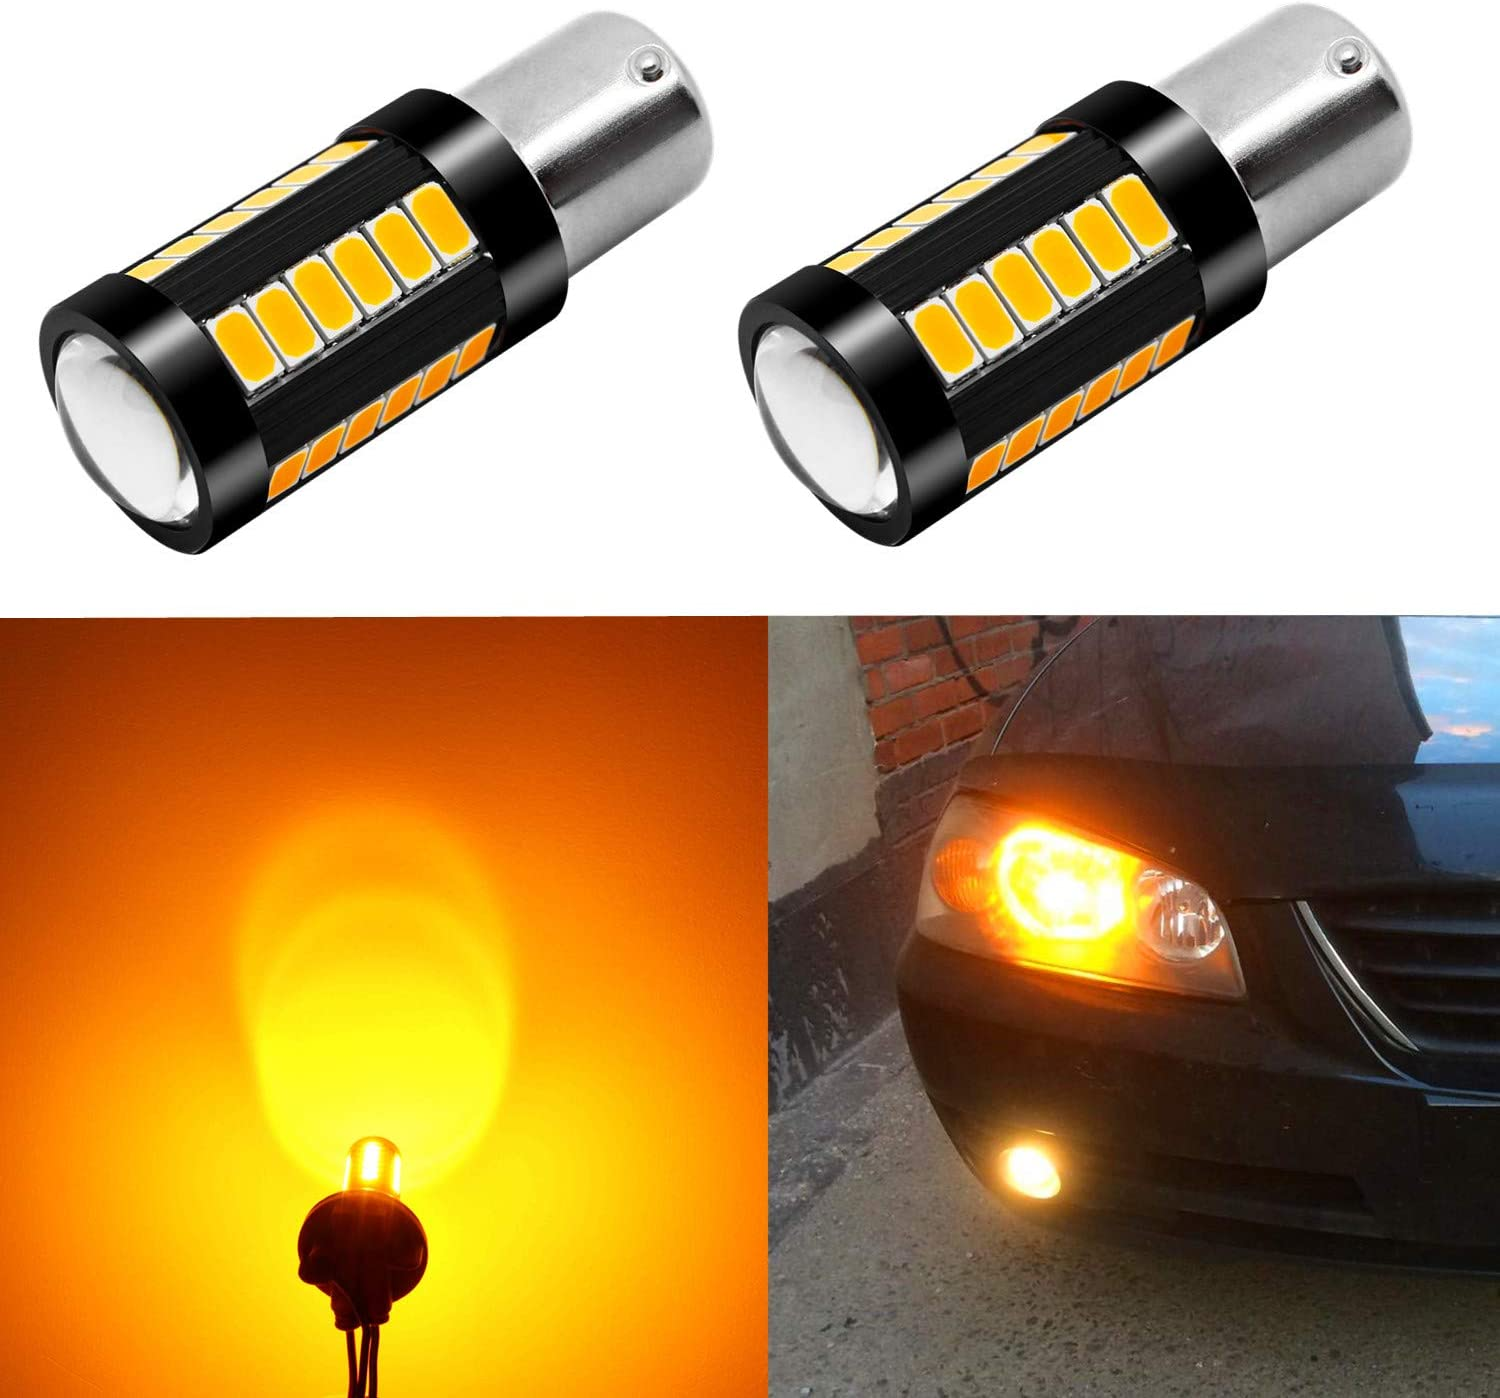 Alla Lighting 2800lm BAU15S 12496 7507 LED Turn Signal Light Bulbs Xtreme Super Bright 7507 LED Bulbs High Power 5730 33-SMD LED 7507 Bulbs PY21W 2641A LED Blinker Light, Orange Yellow (Set of 2)